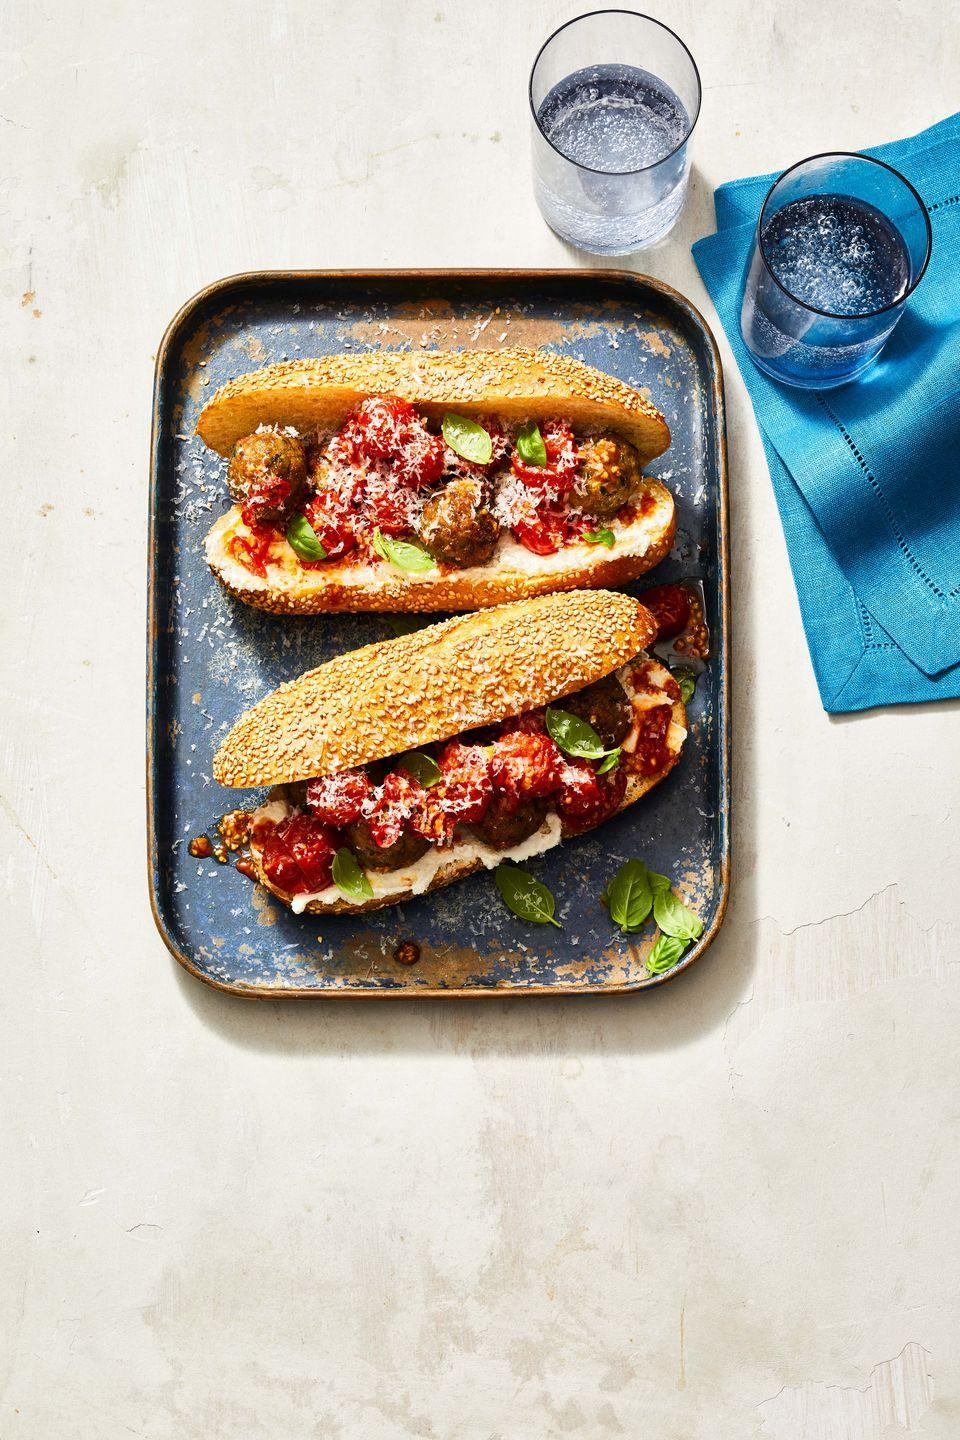 """<p>Featuring tender meatballs on a toasted hero roll with creamy ricotta and fresh tomato sauce, this makes a tasty family dinner that'll have everyone asking for seconds.</p><p><em><a href=""""https://www.goodhousekeeping.com/food-recipes/a37199514/meatball-sub-sandwich-recipe/"""" rel=""""nofollow noopener"""" target=""""_blank"""" data-ylk=""""slk:Get the recipe for Air Fryer Meatball Sub »"""" class=""""link rapid-noclick-resp"""">Get the recipe for Air Fryer Meatball Sub »</a></em></p><p><strong>RELATED: </strong><a href=""""https://www.goodhousekeeping.com/food-recipes/g605/family-style-recipes/"""" rel=""""nofollow noopener"""" target=""""_blank"""" data-ylk=""""slk:75 Easy, Delicious Family Dinner Ideas For Any Day of the Week"""" class=""""link rapid-noclick-resp"""">75 Easy, Delicious Family Dinner Ideas For Any Day of the Week</a><br></p>"""